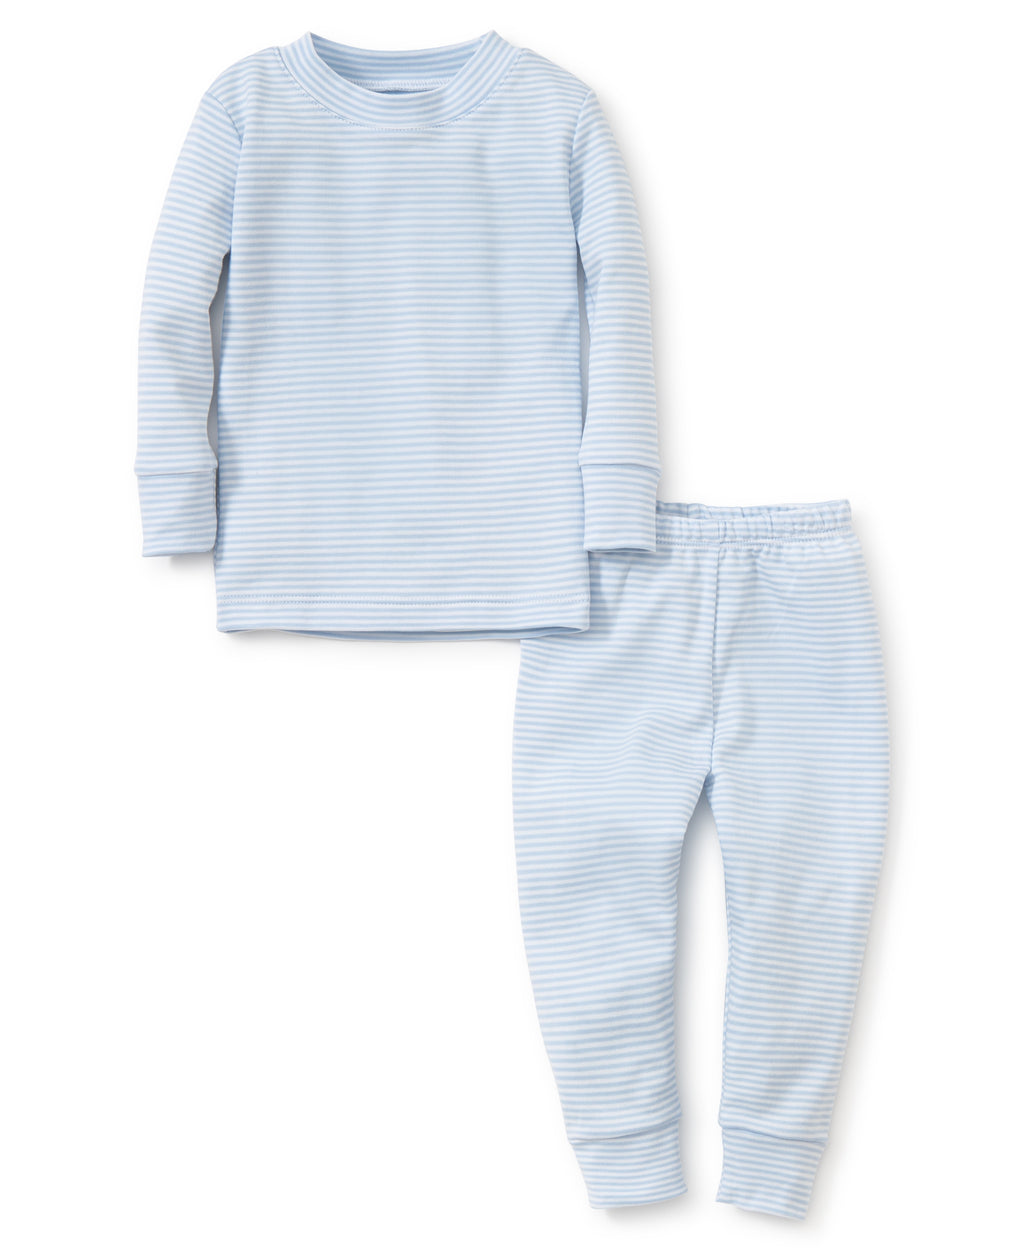 Simple Stripes Pajama Set